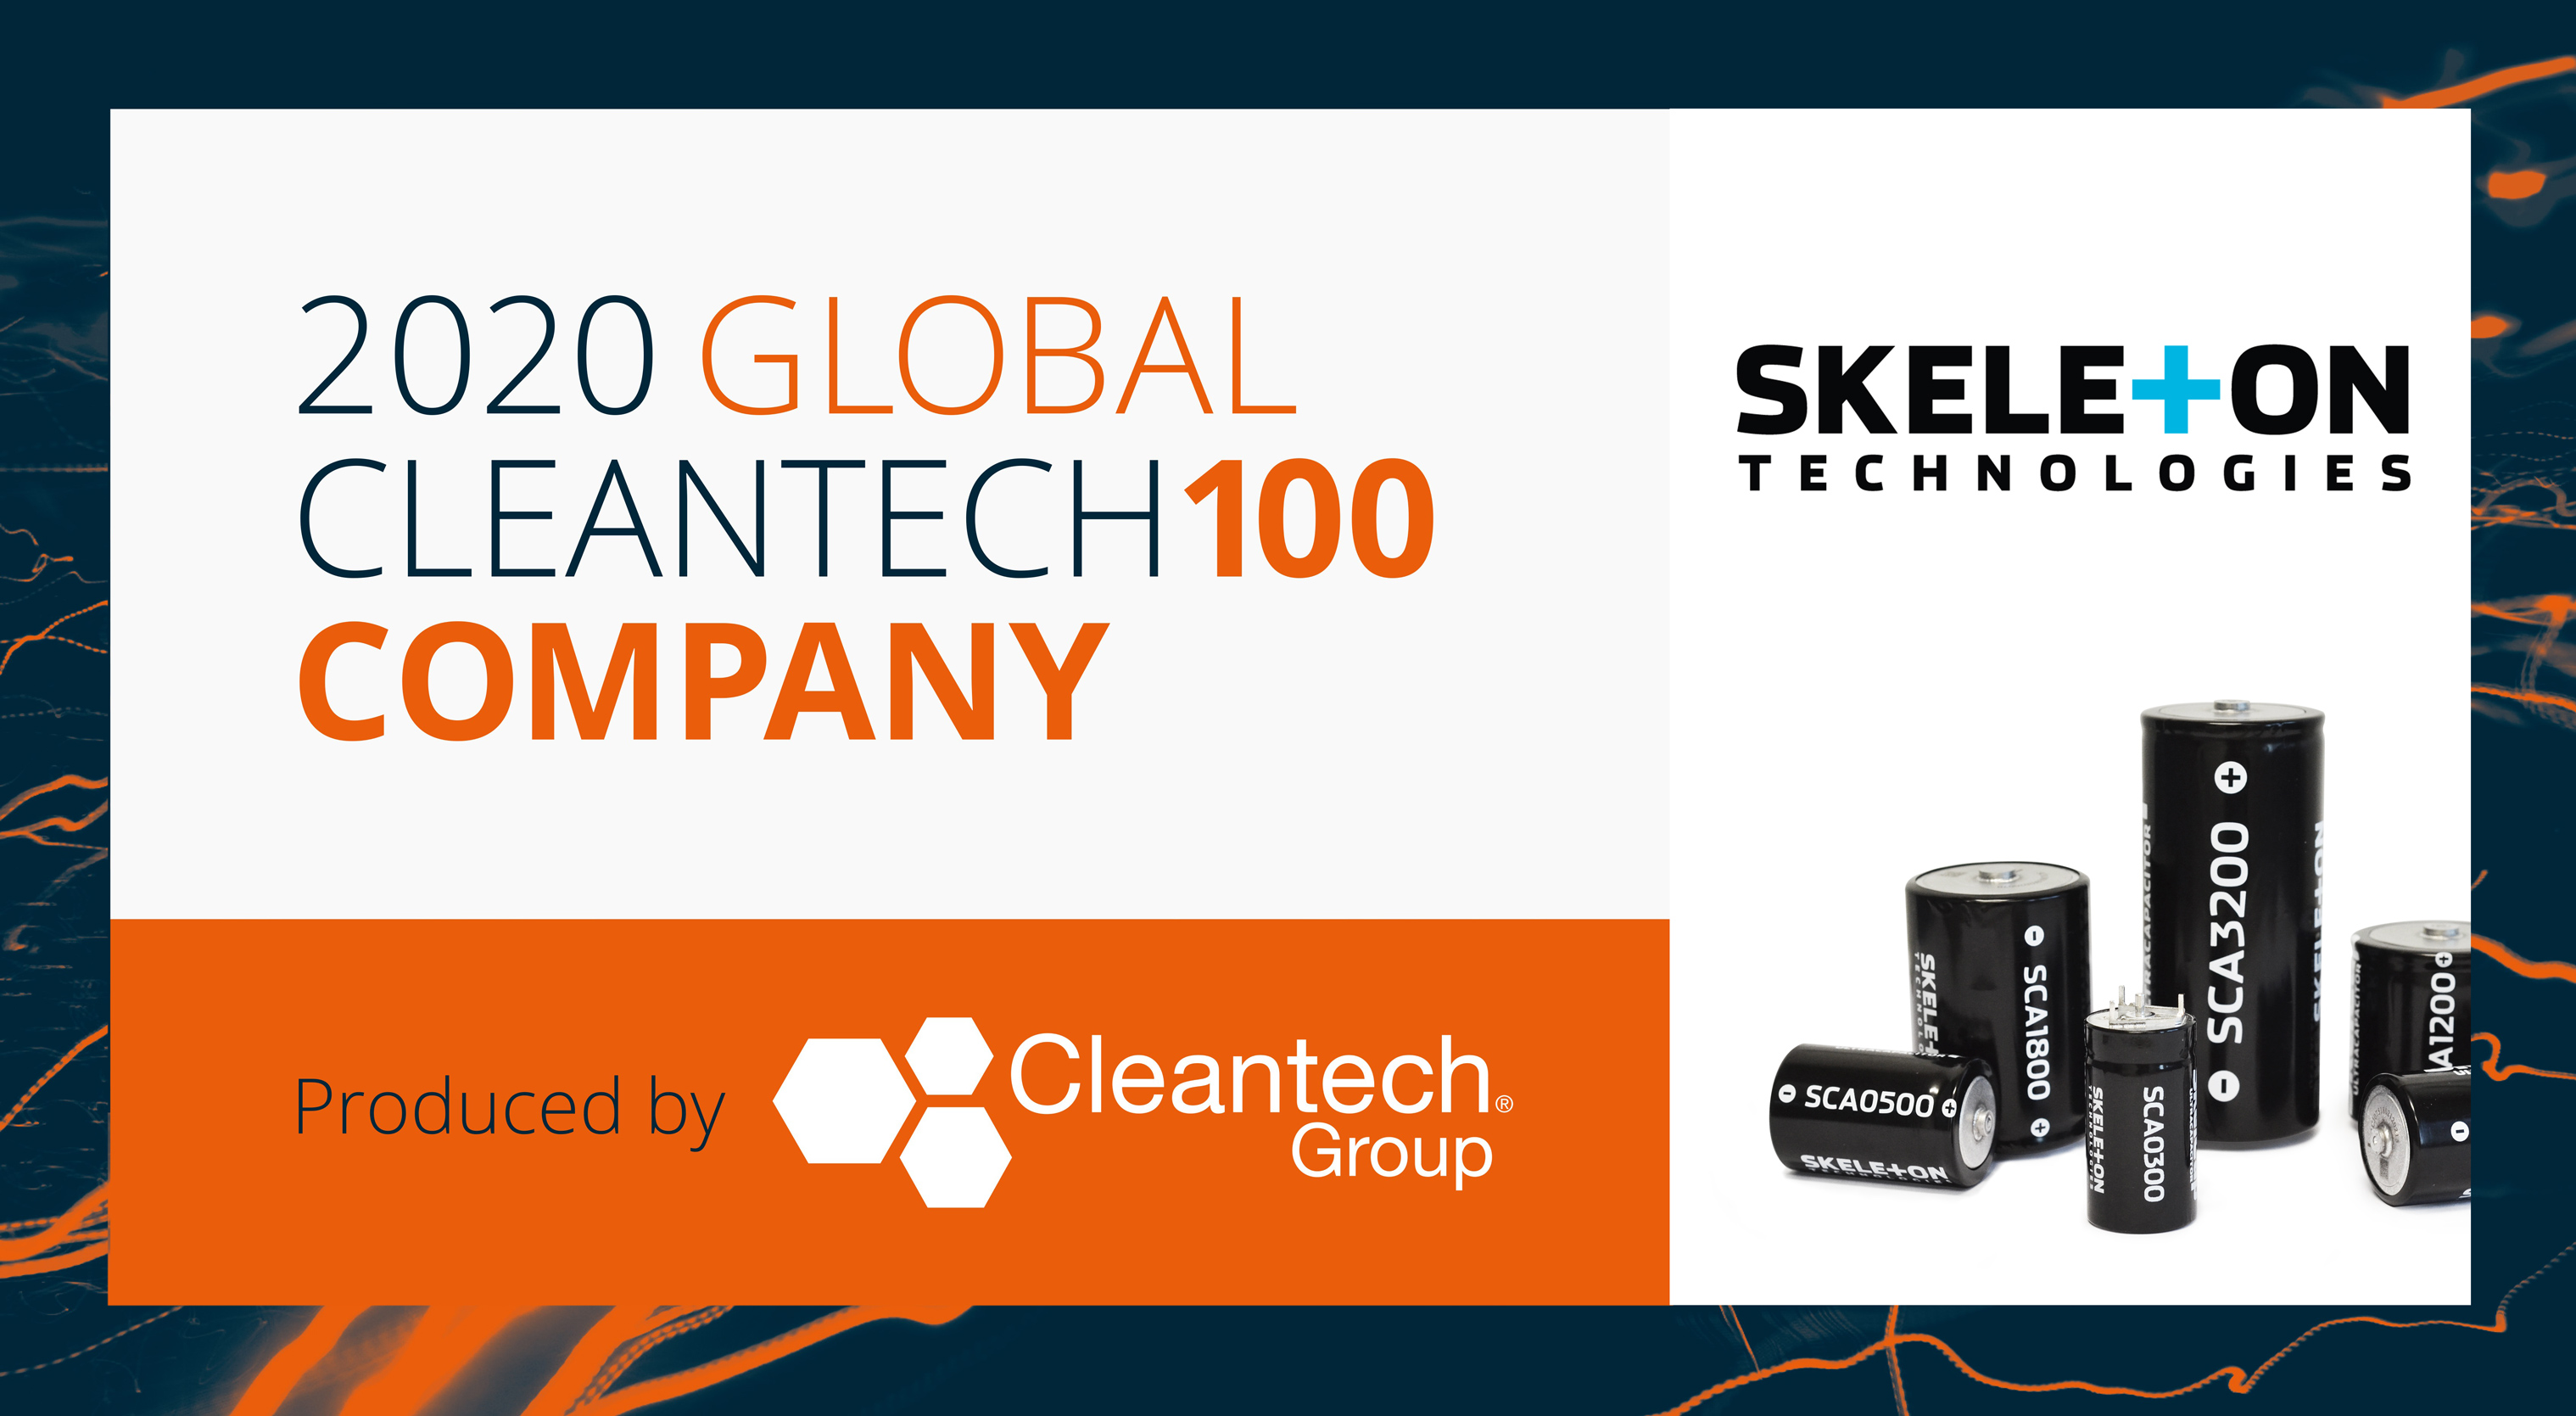 2020-Global-Cleantech-100-Skeleton Technologies